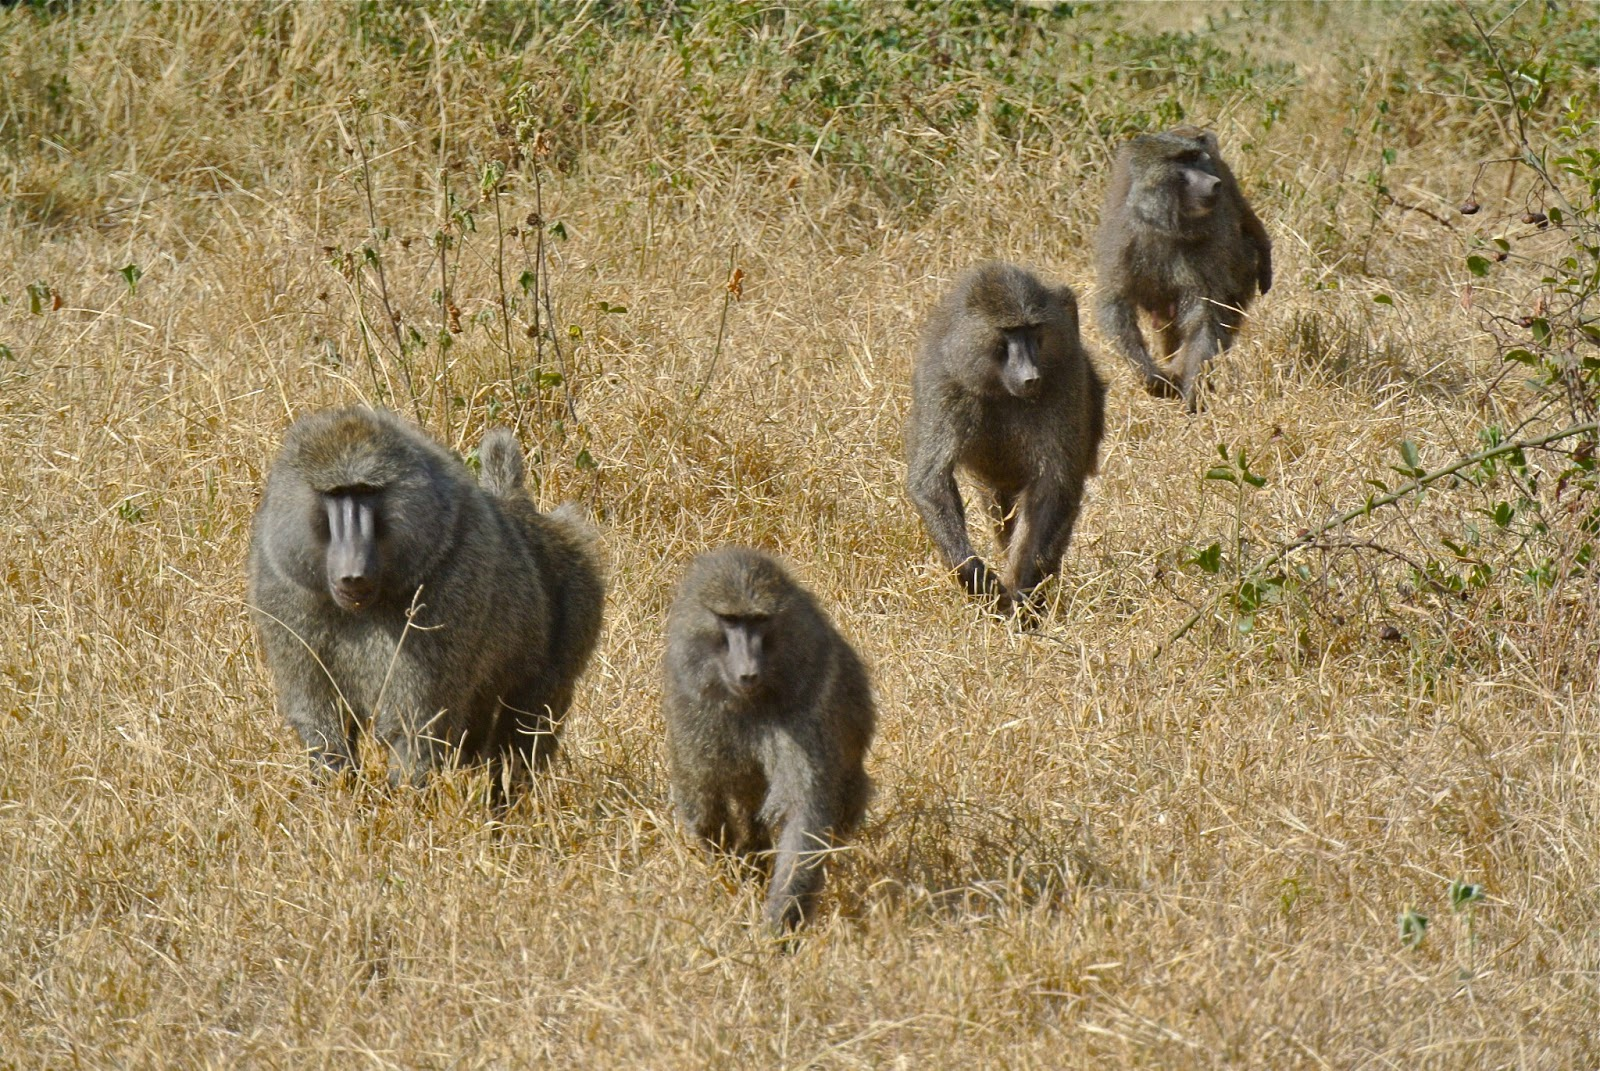 Baboon foraging choices depend on their habitat and social status: study